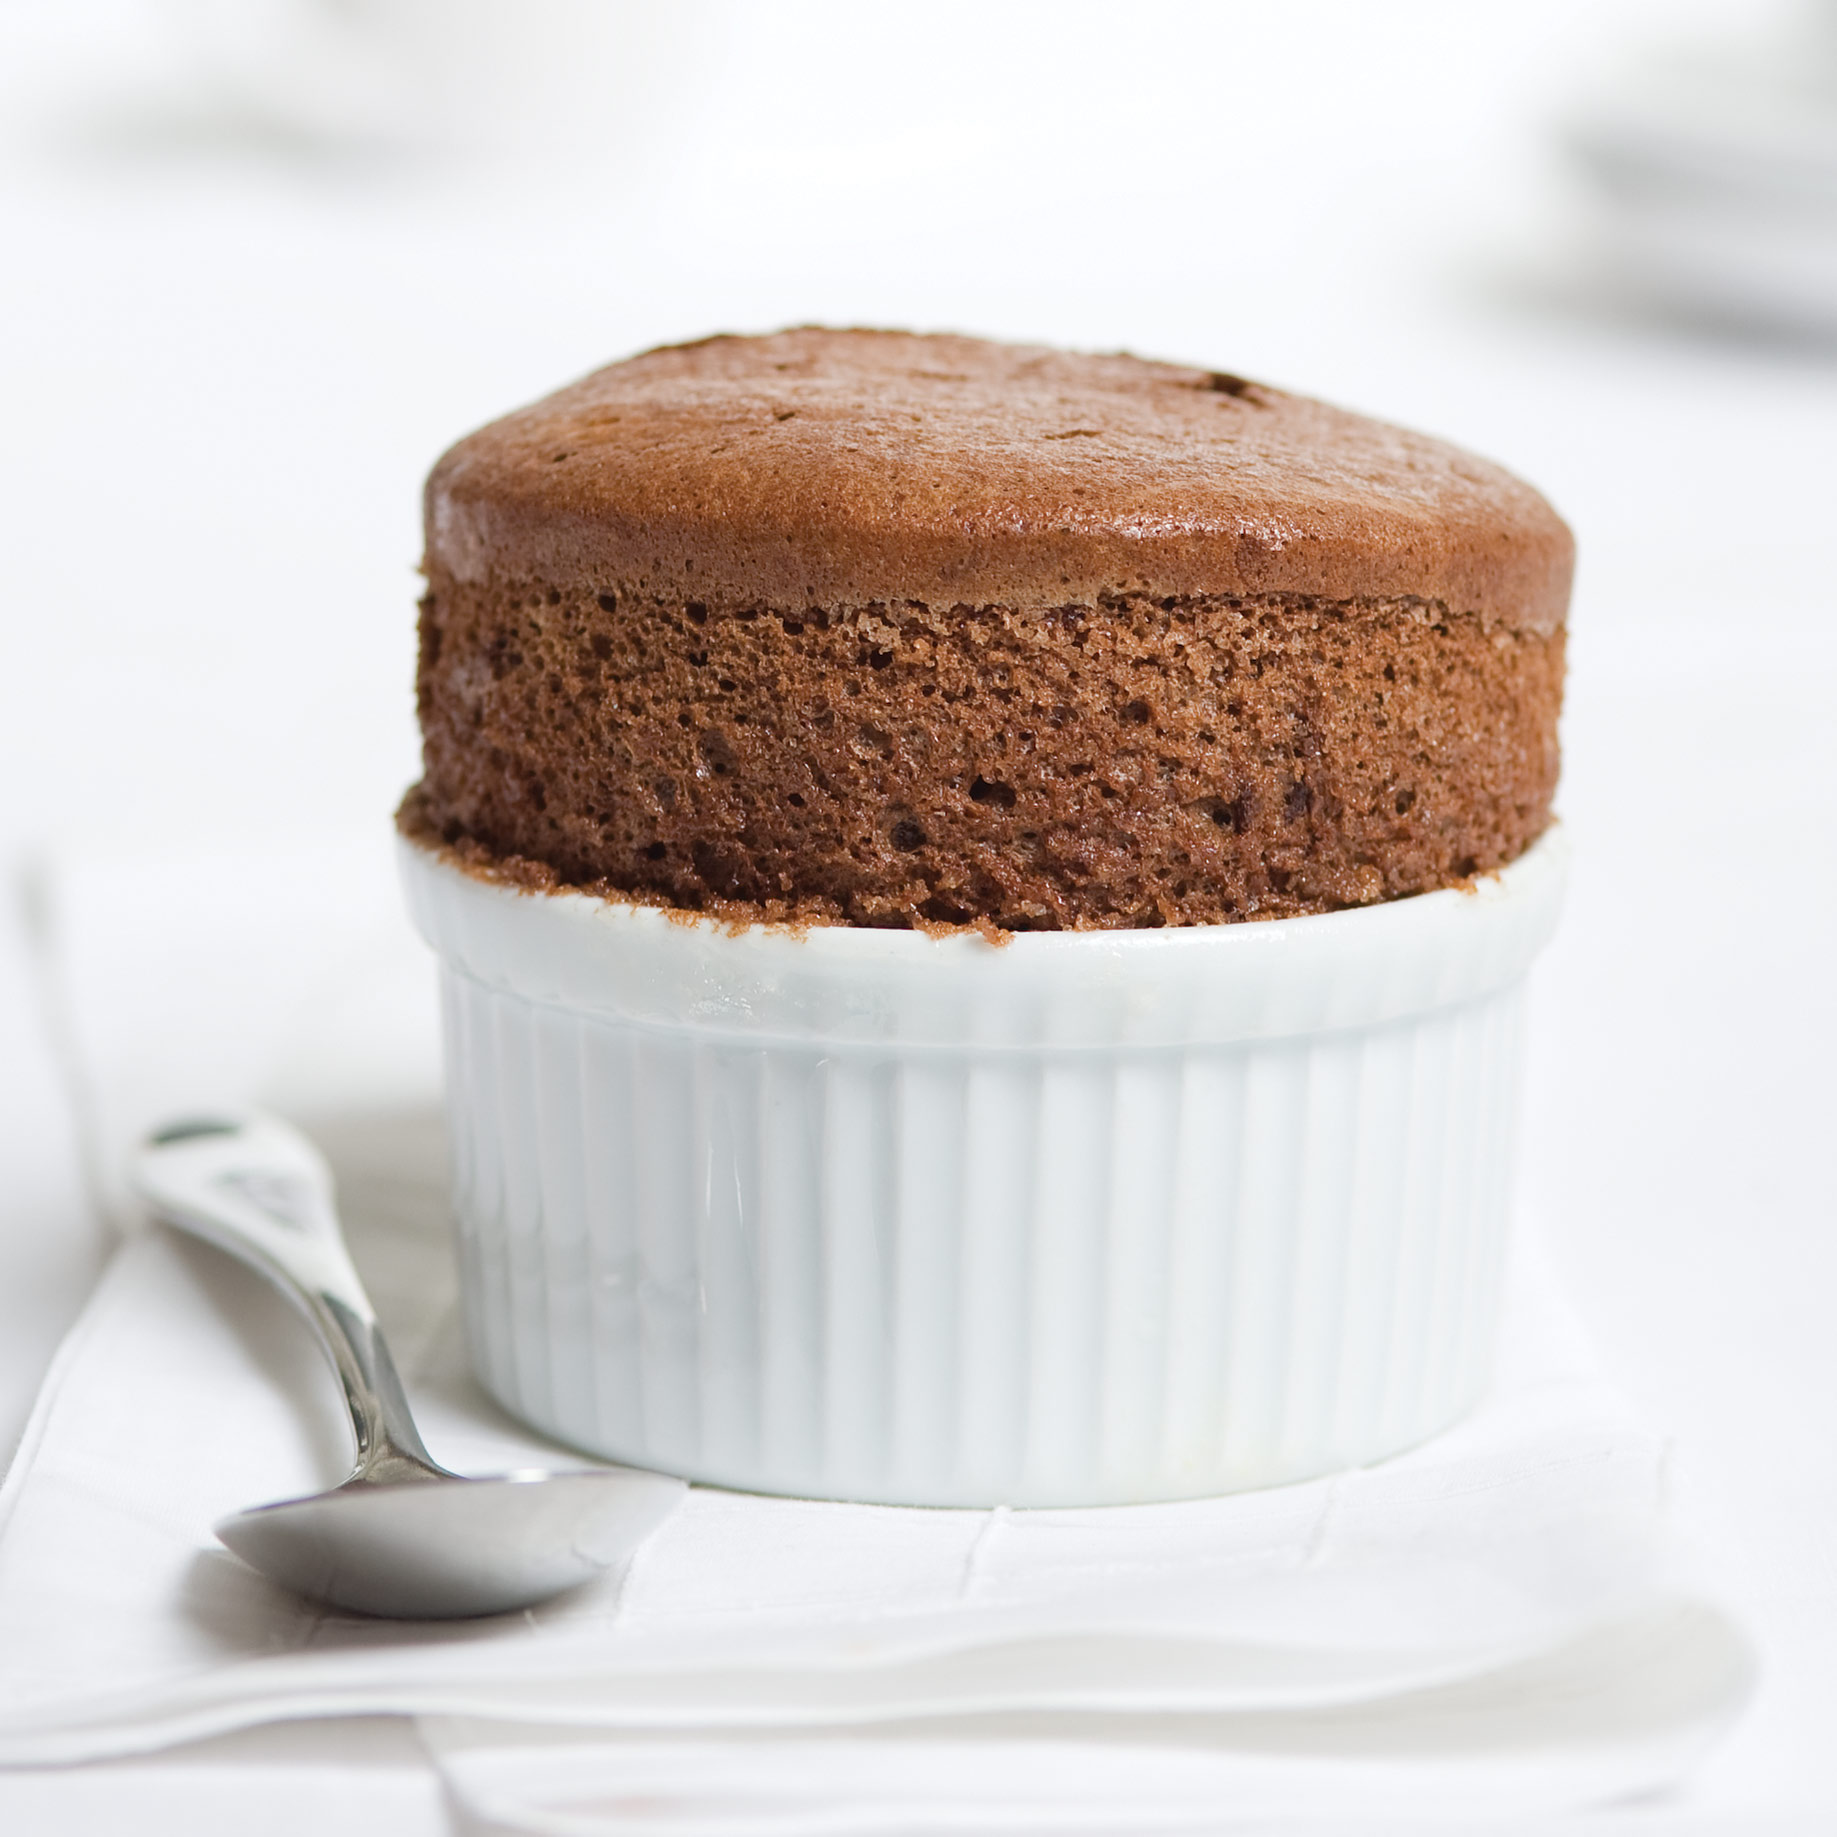 Make-Ahead Chocolate Souffle | America's Test Kitchen